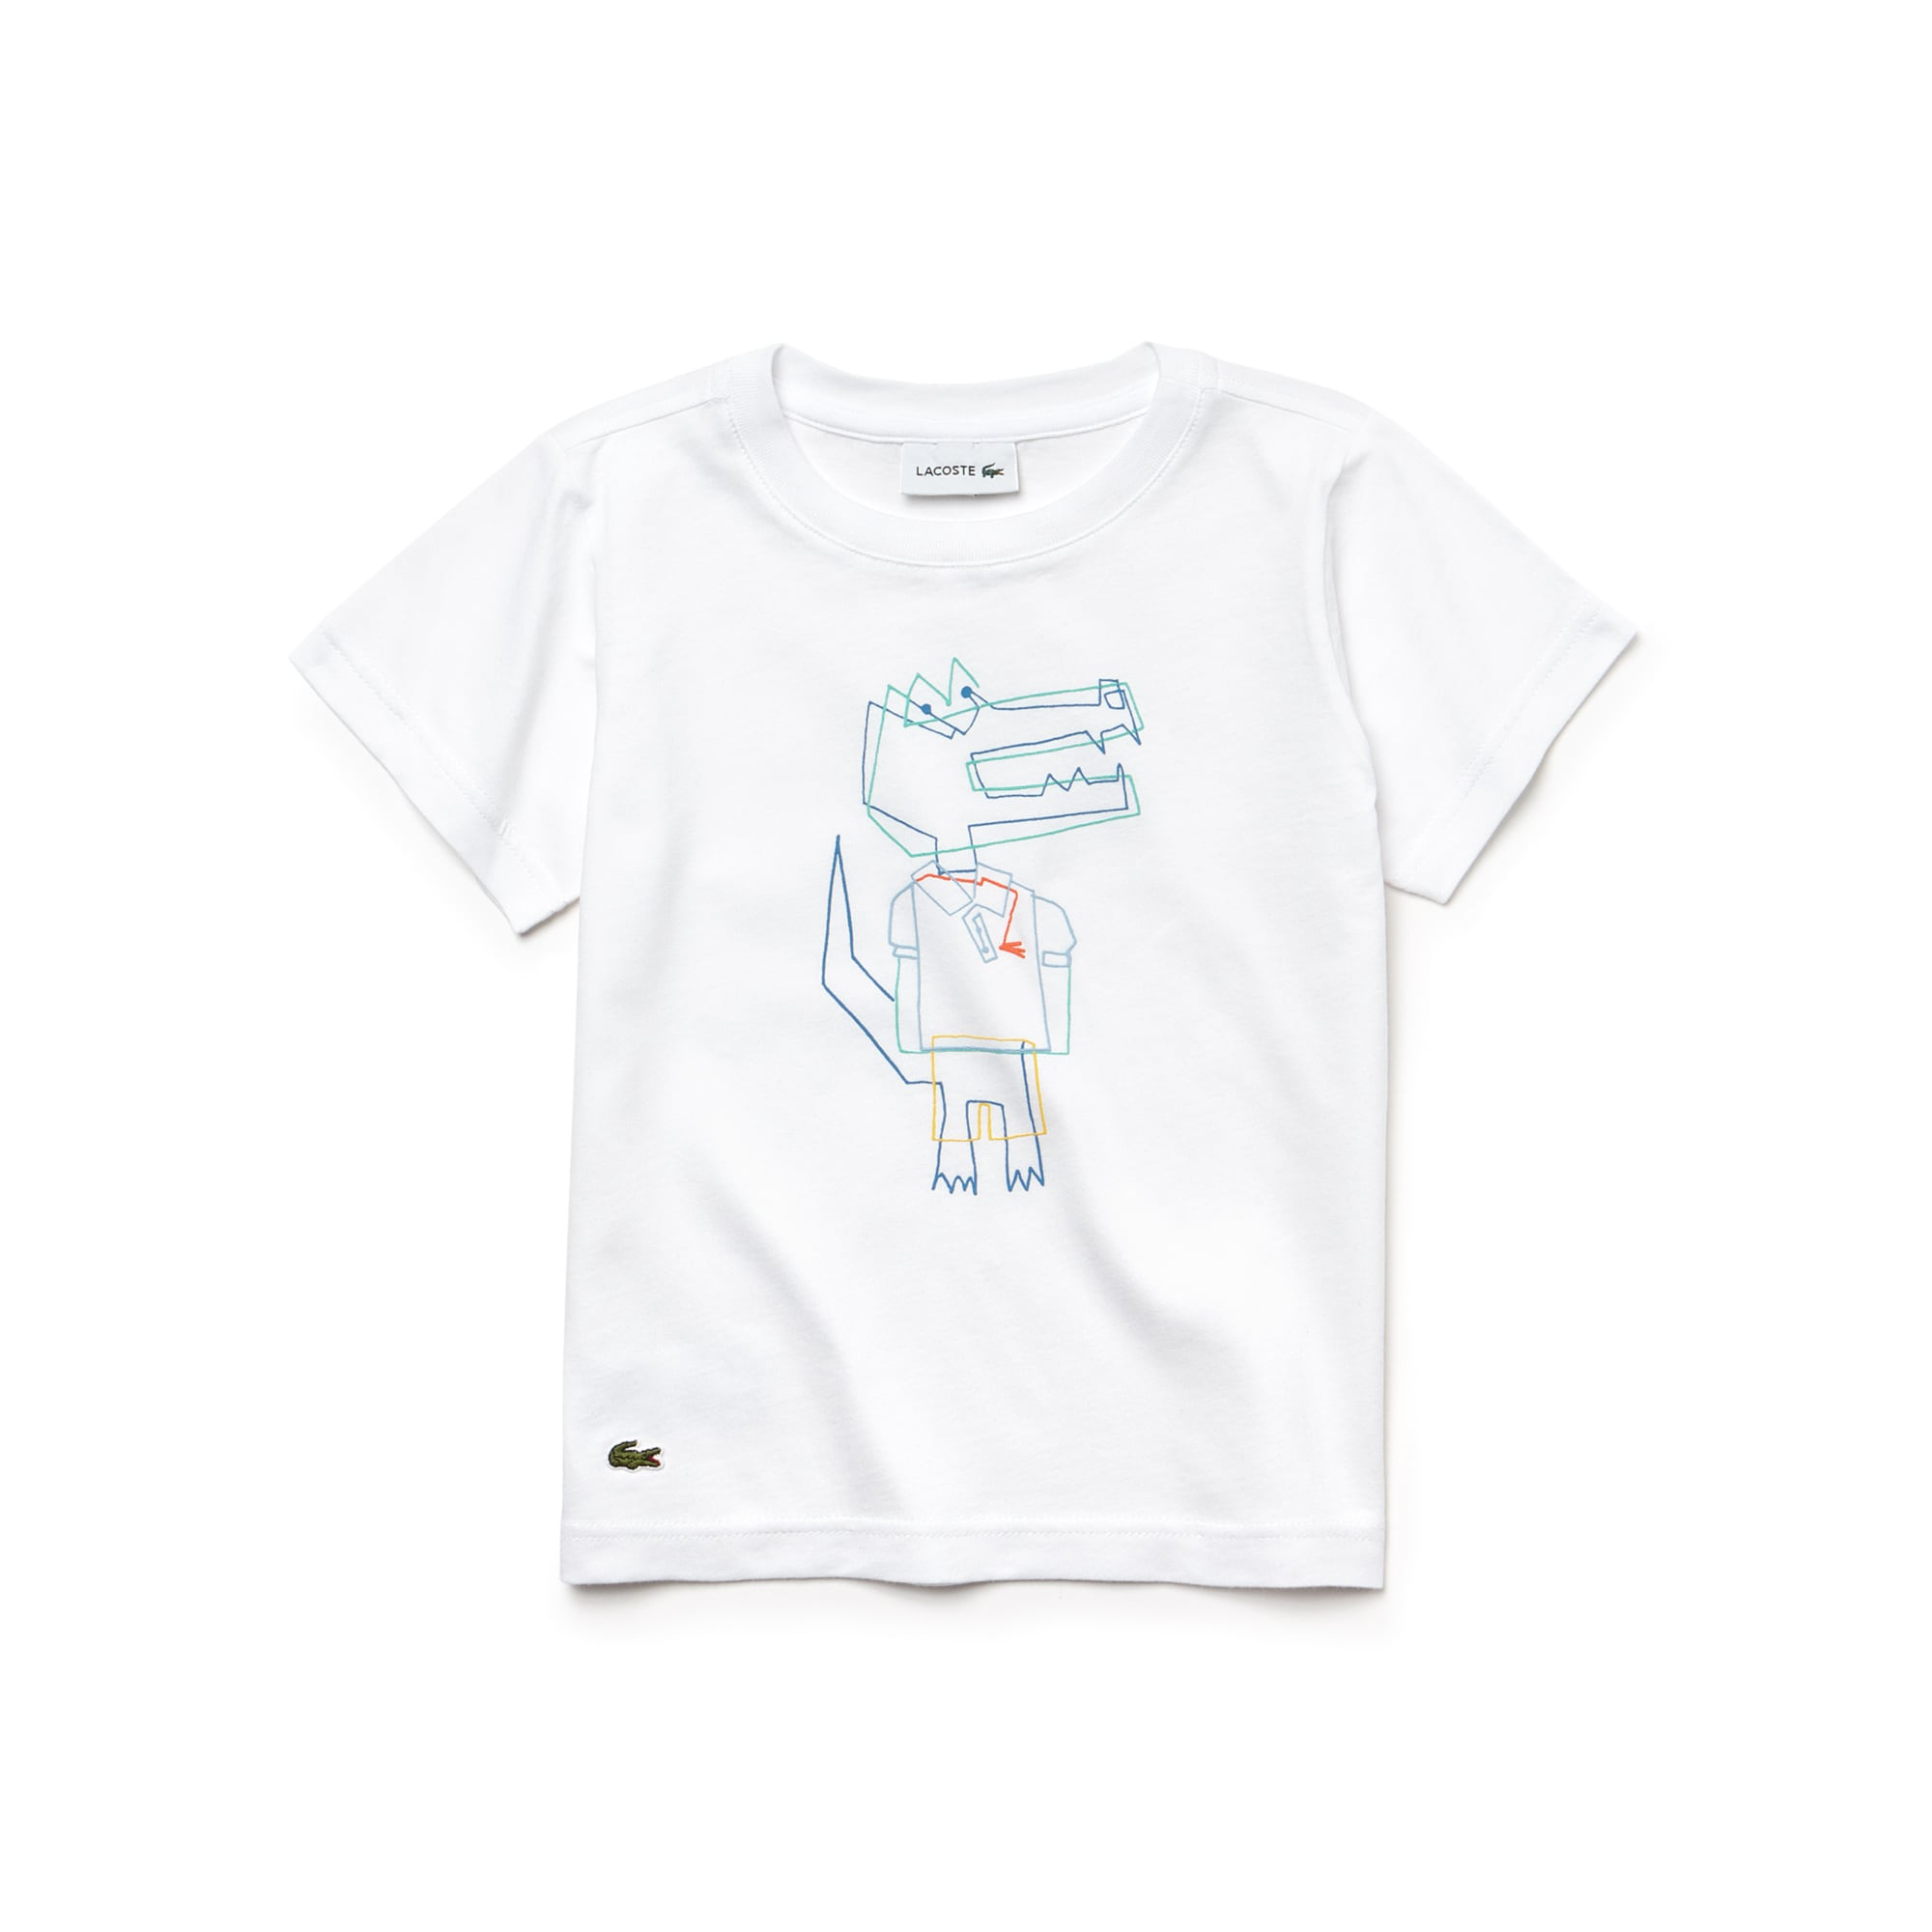 Boys' Crew Neck Crocodile Print Jersey T-shirt